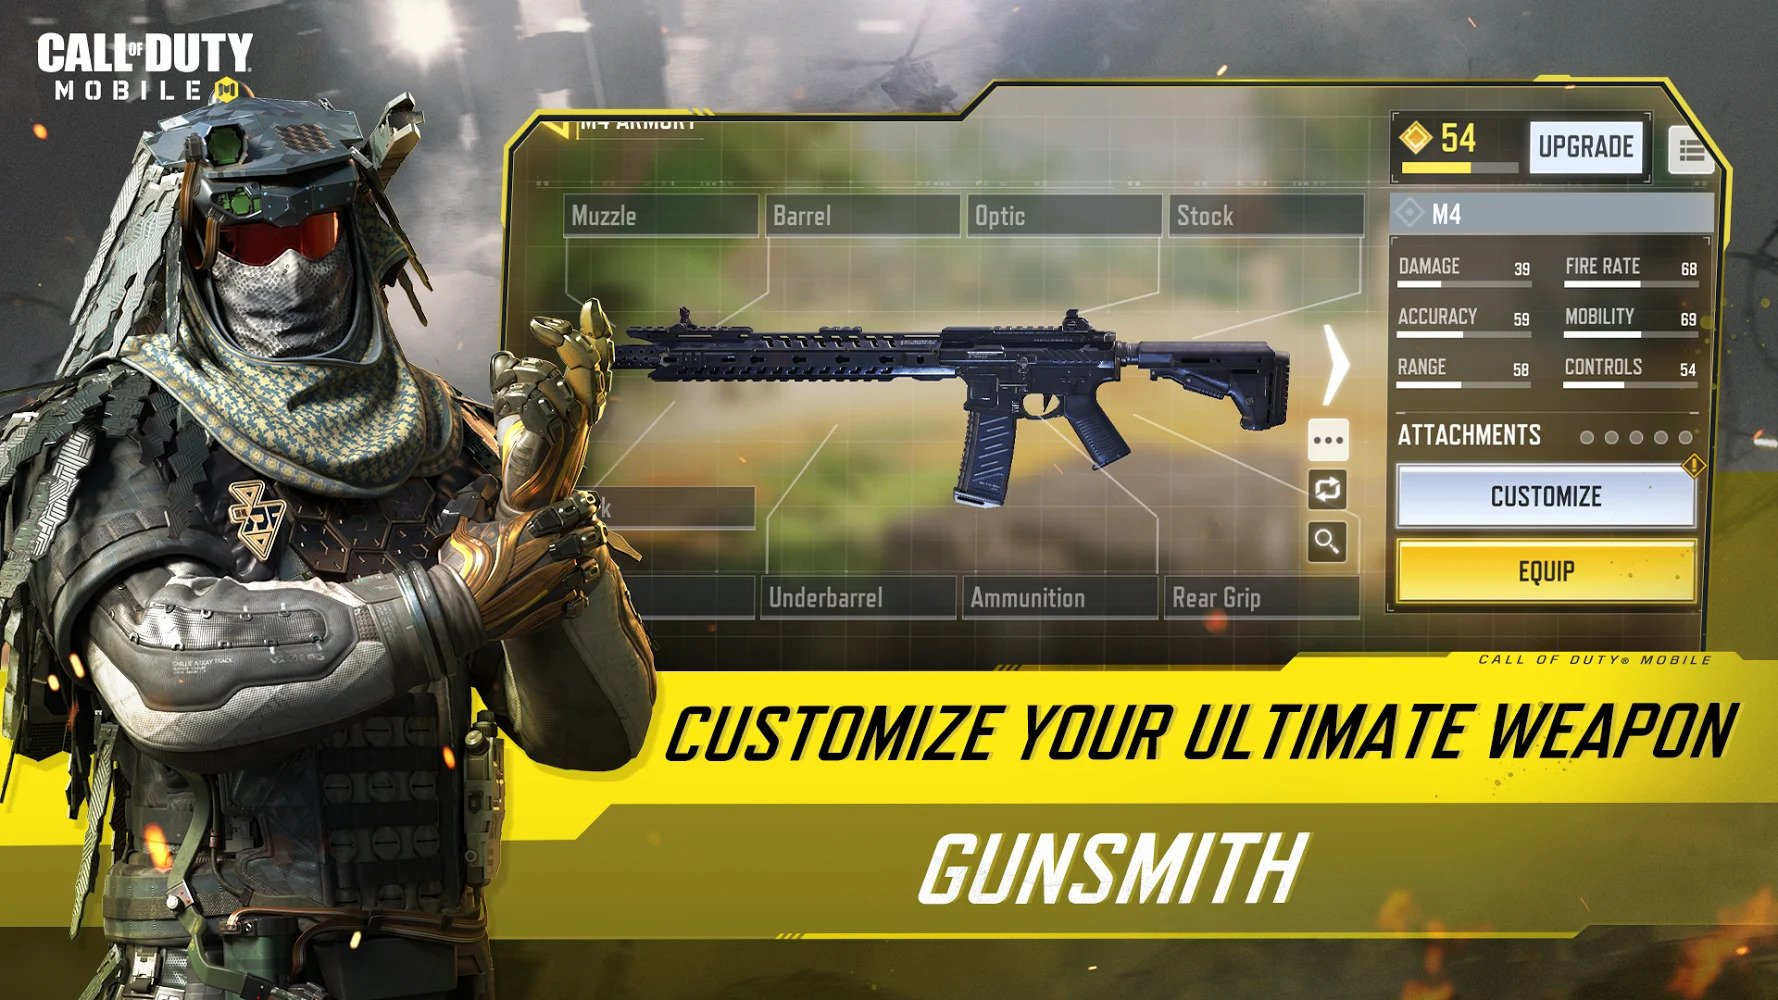 Call Of Duty Mobile Mod Apk Free Download 4